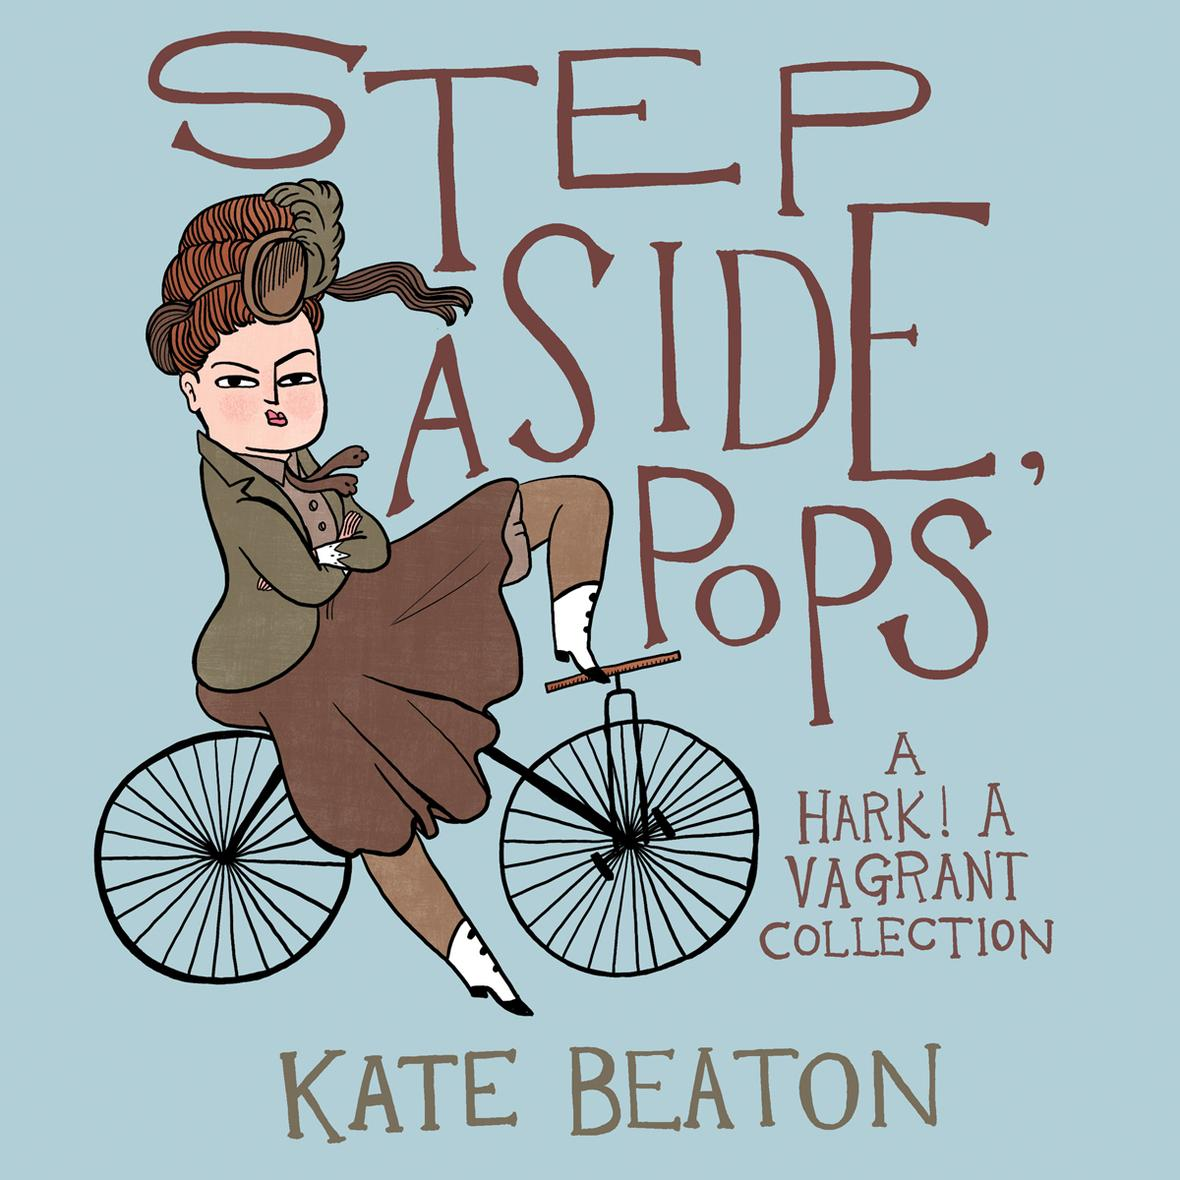 Tom Spurgeon (@comicsreporter): dnq will release a sceond kate beaton collection this fall -- http://t.co/5b4IlNHynB